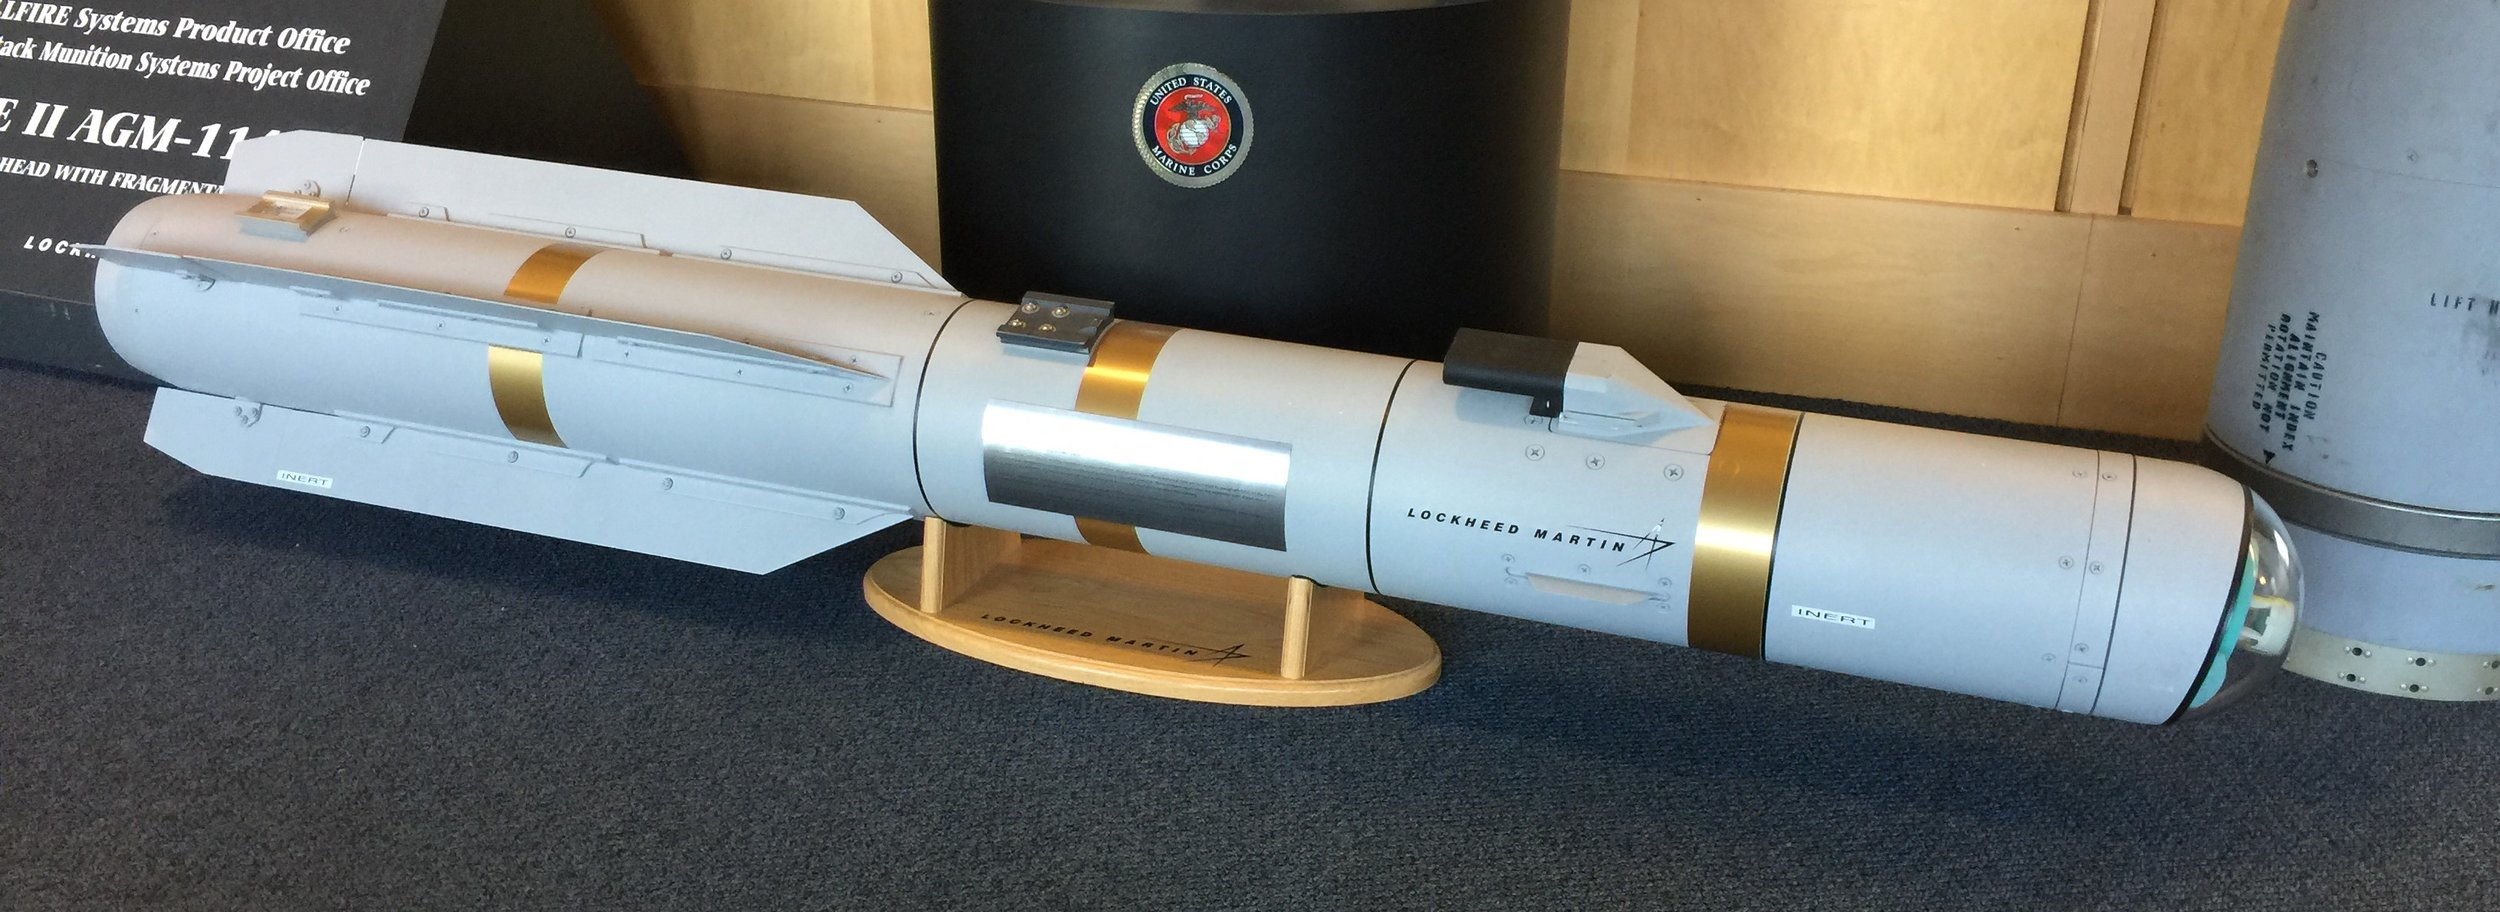 Joint-Air-to-Ground Missile (JAGM) for Rotary Wing Aircraft (Photo credit: CoAspire, LLC)